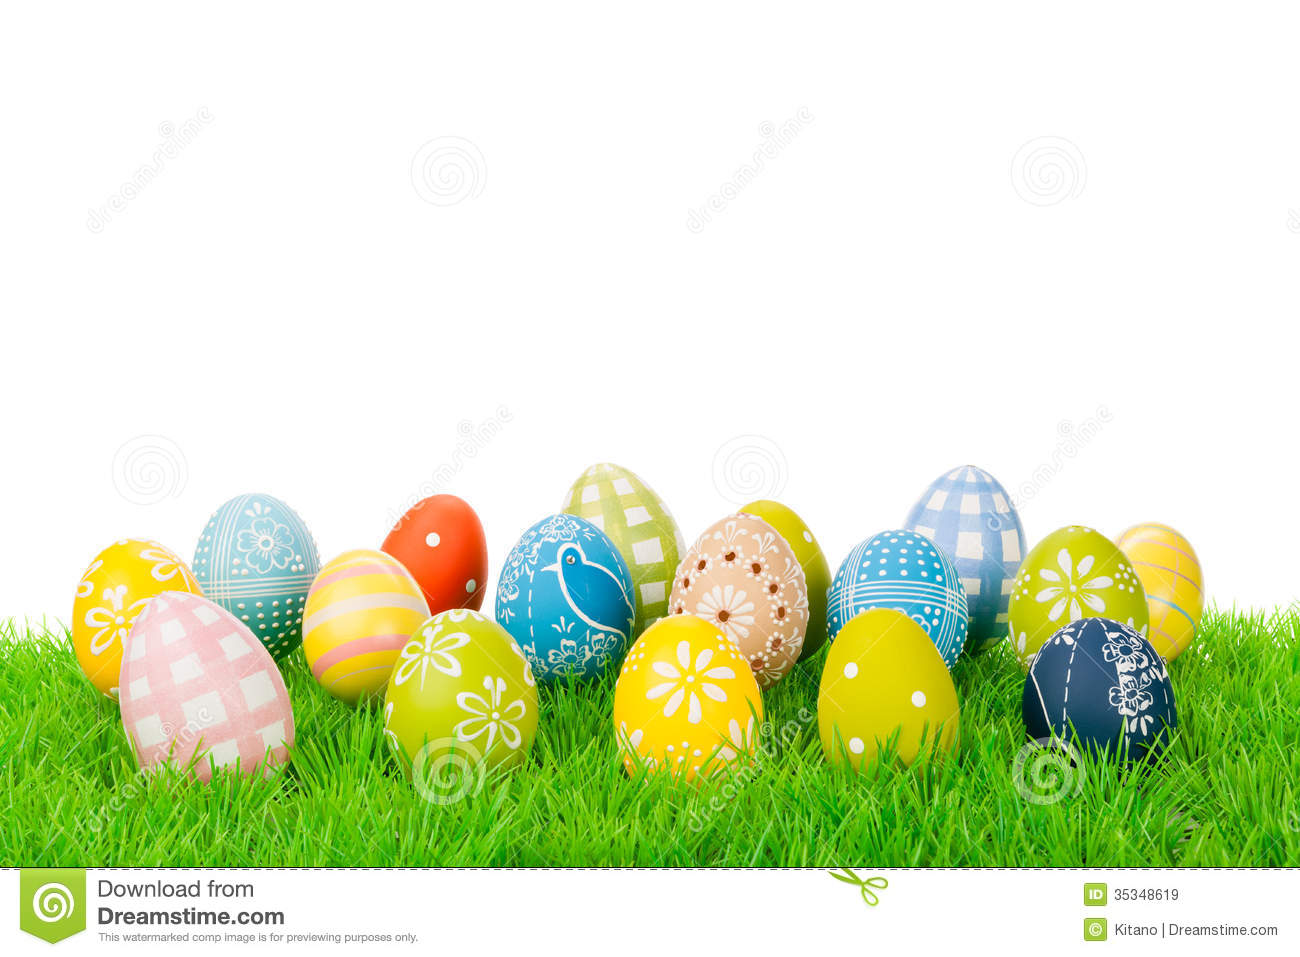 Easter egg hunt clipart free graphic library library Easter egg hunt clipart free - ClipartFest graphic library library